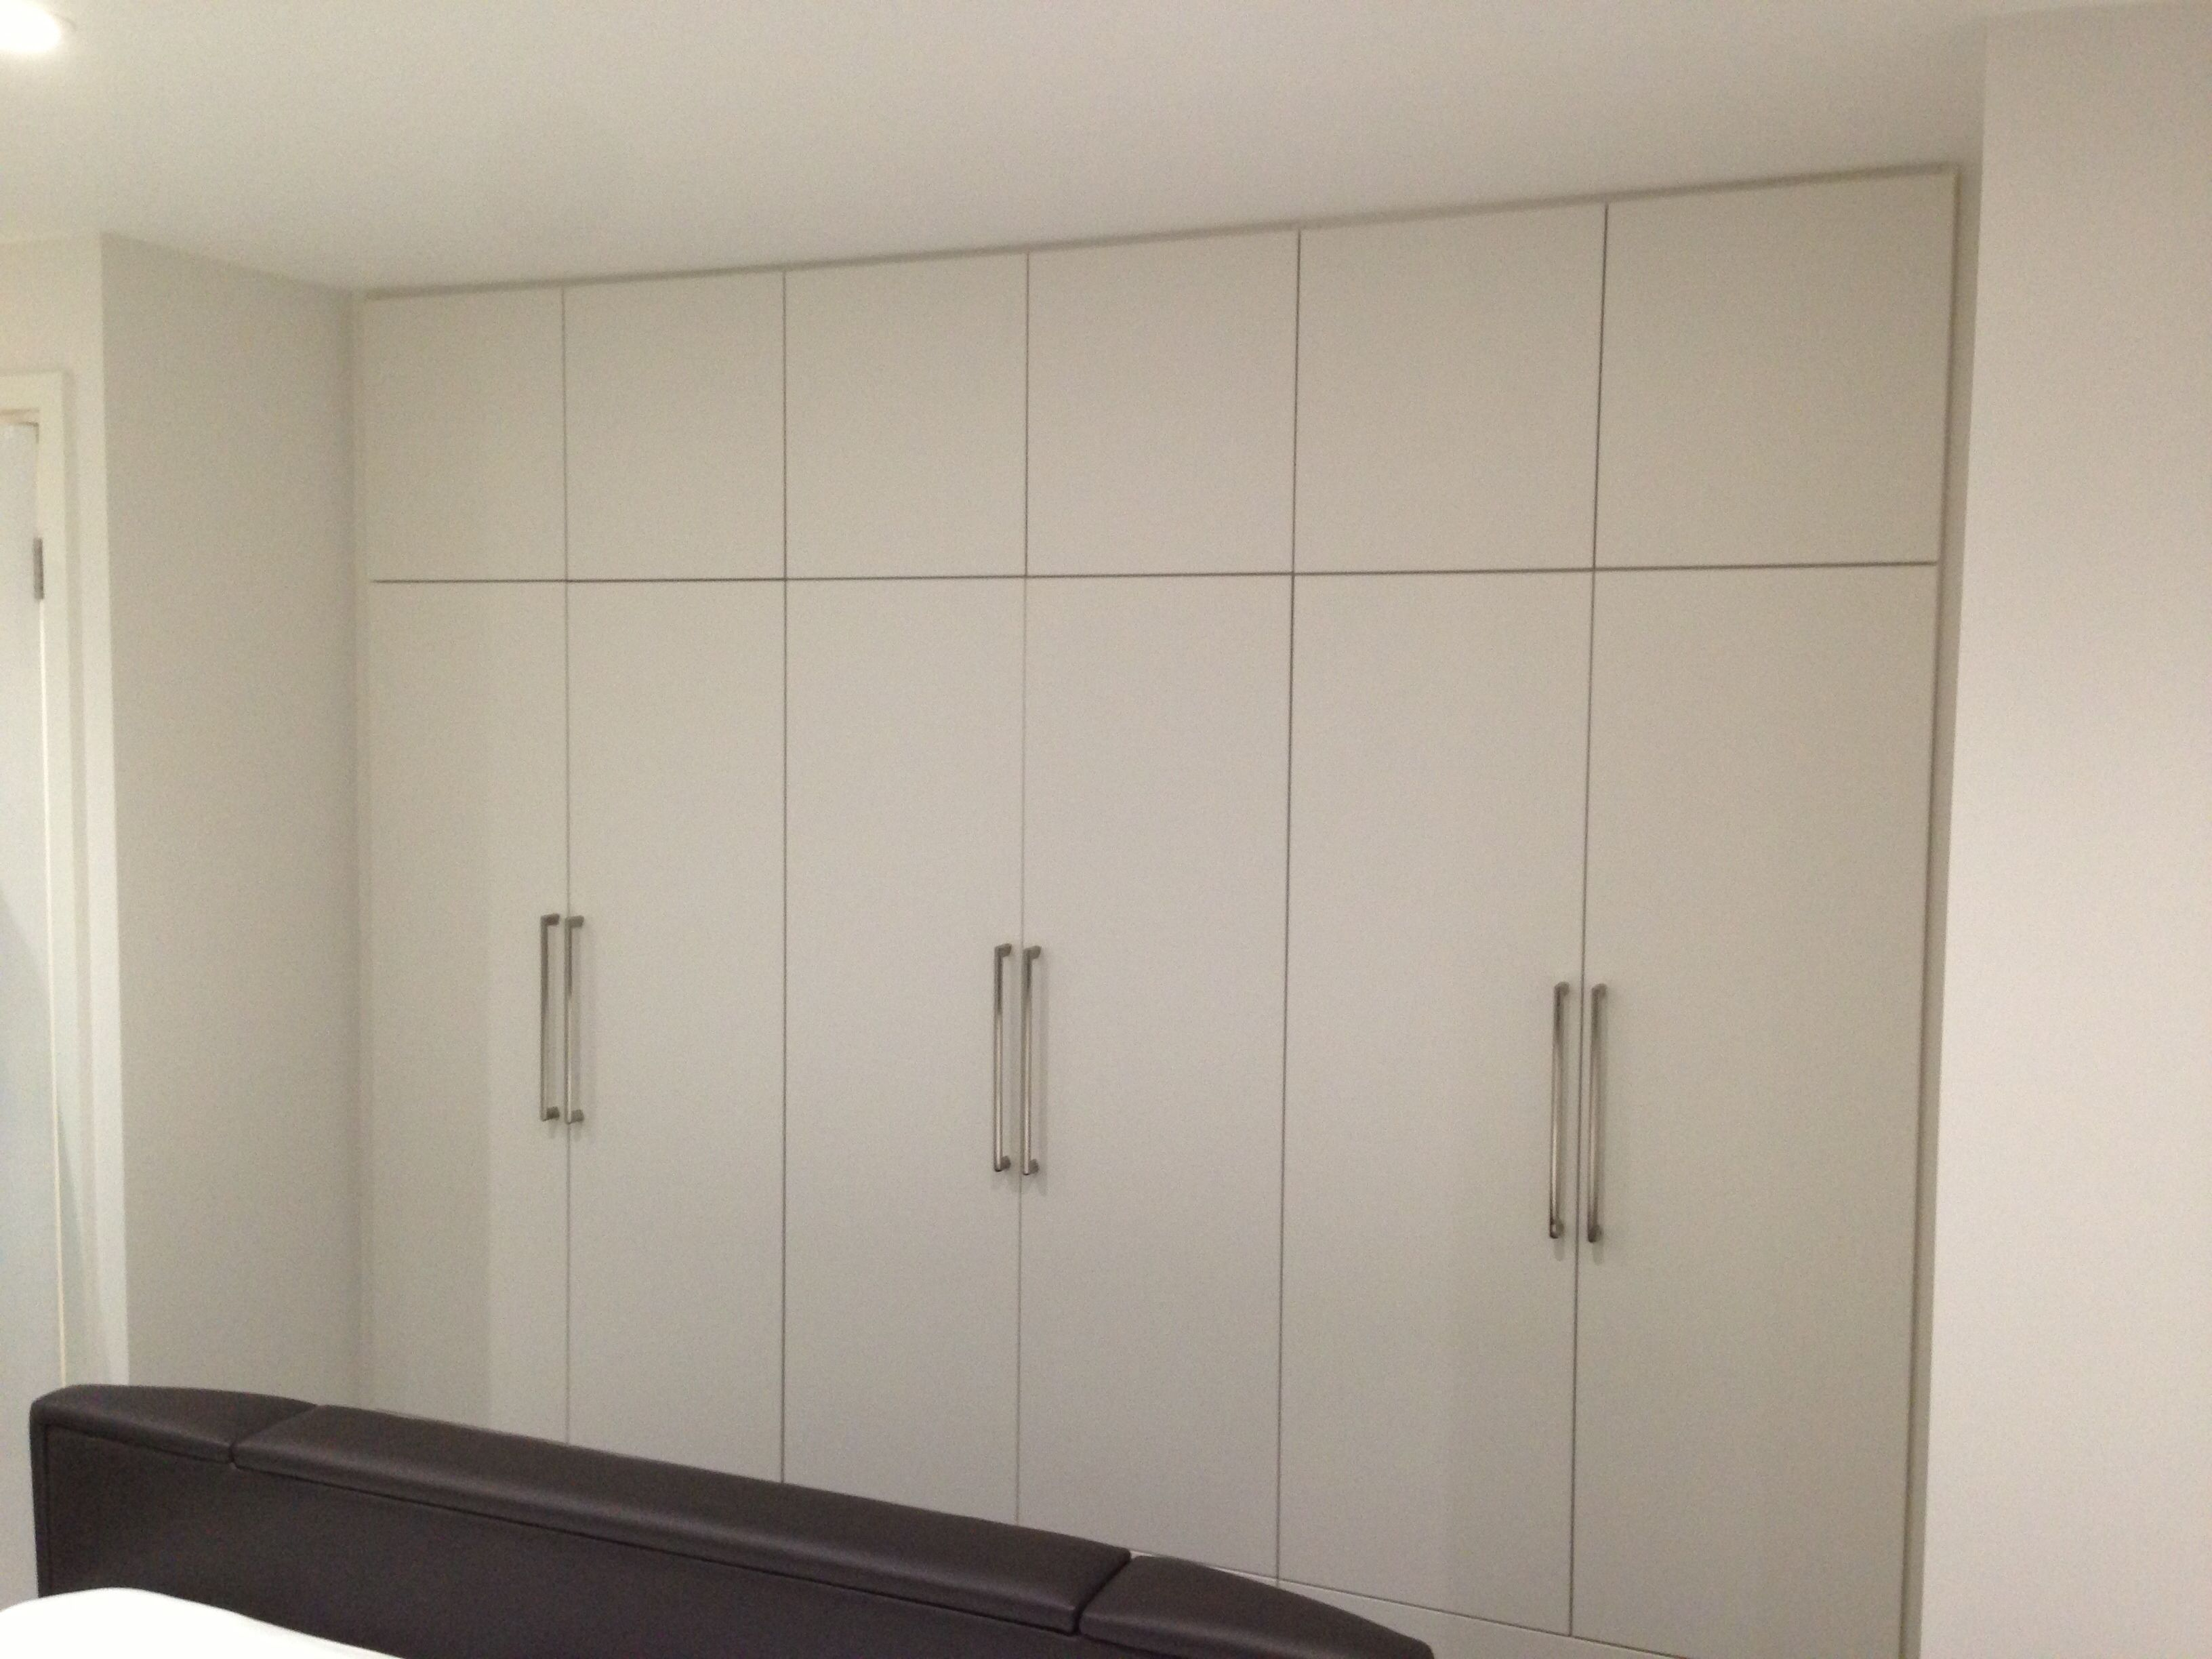 Self Assembly Fitted Bedroom Furniture Bespoke Fitted Wardrobe In White Mfc Laminate Bespoke Joinery